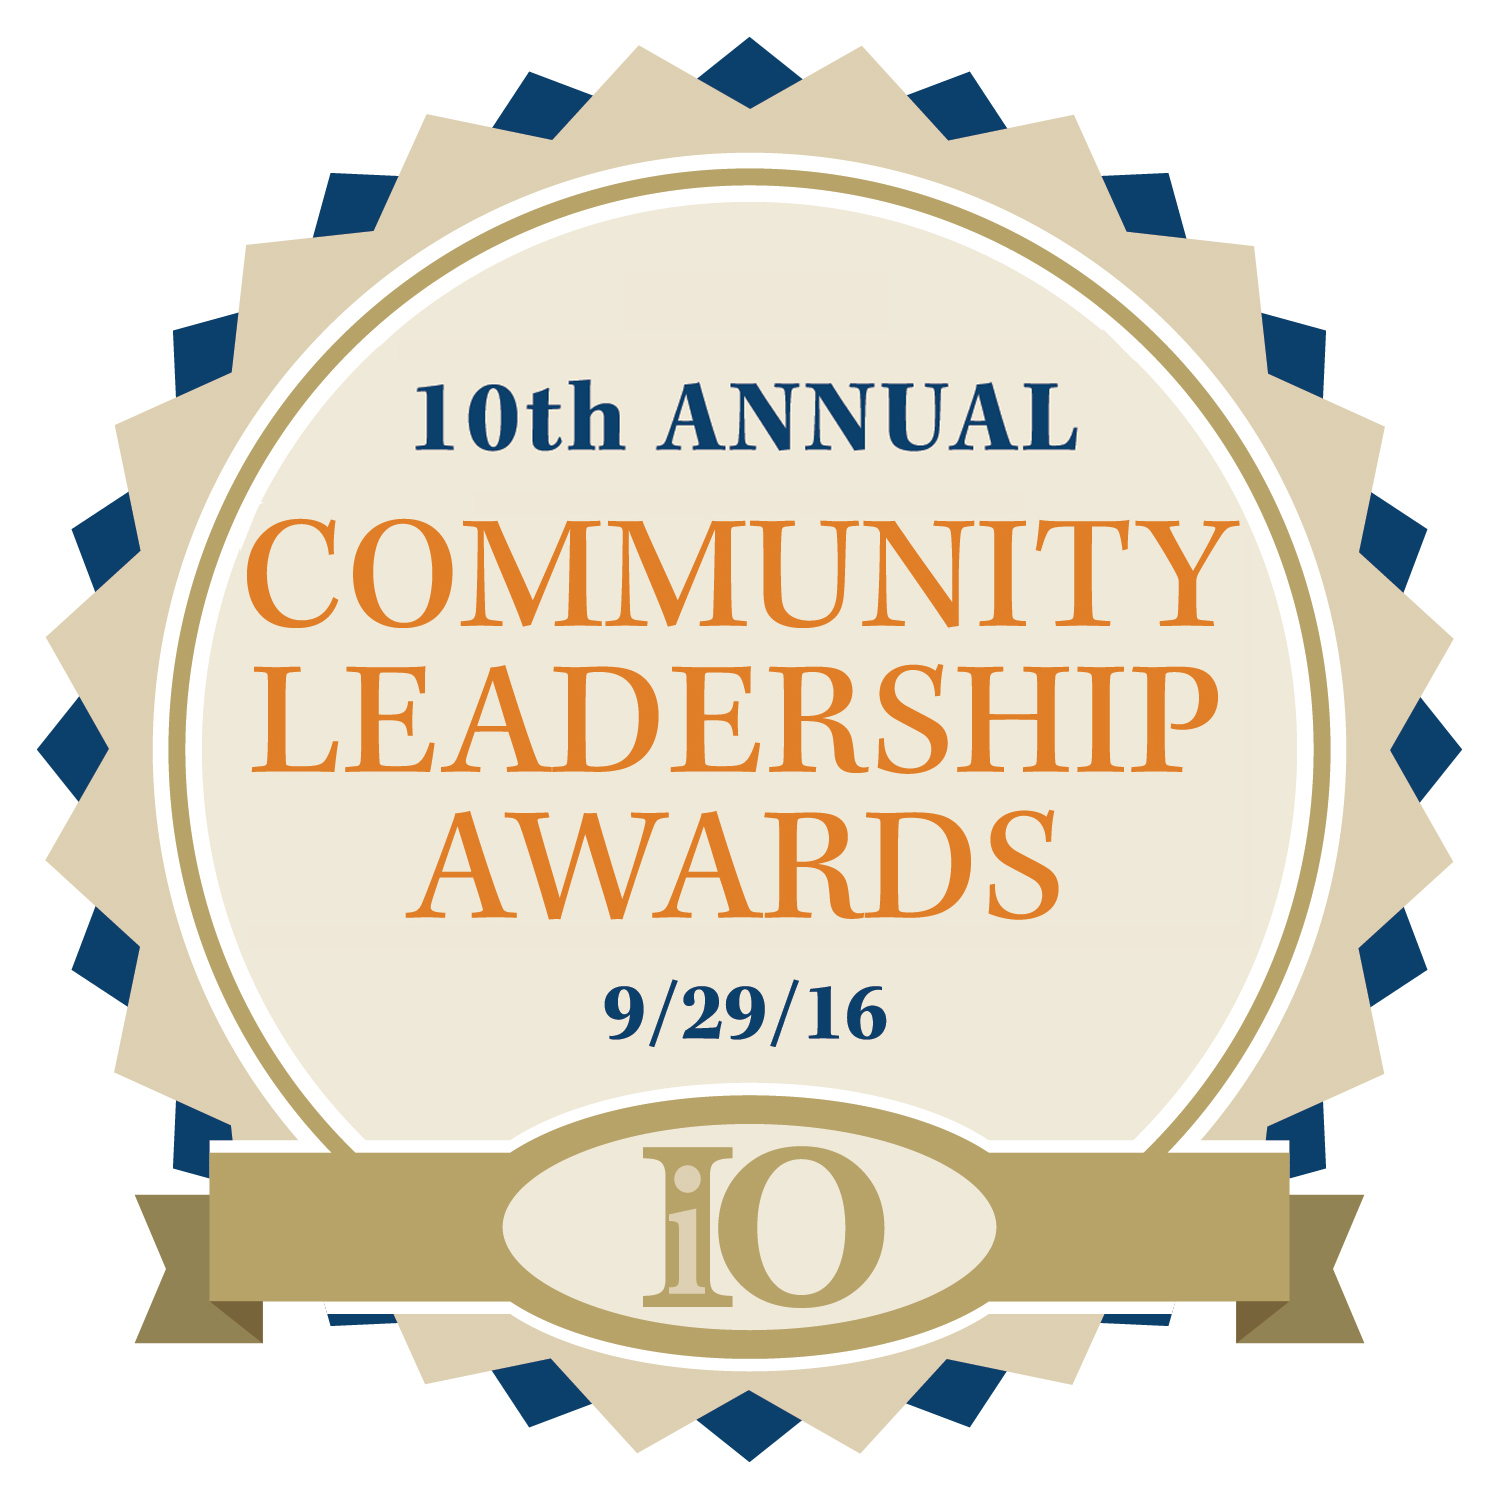 Tenth Annual Community Leadership Awards